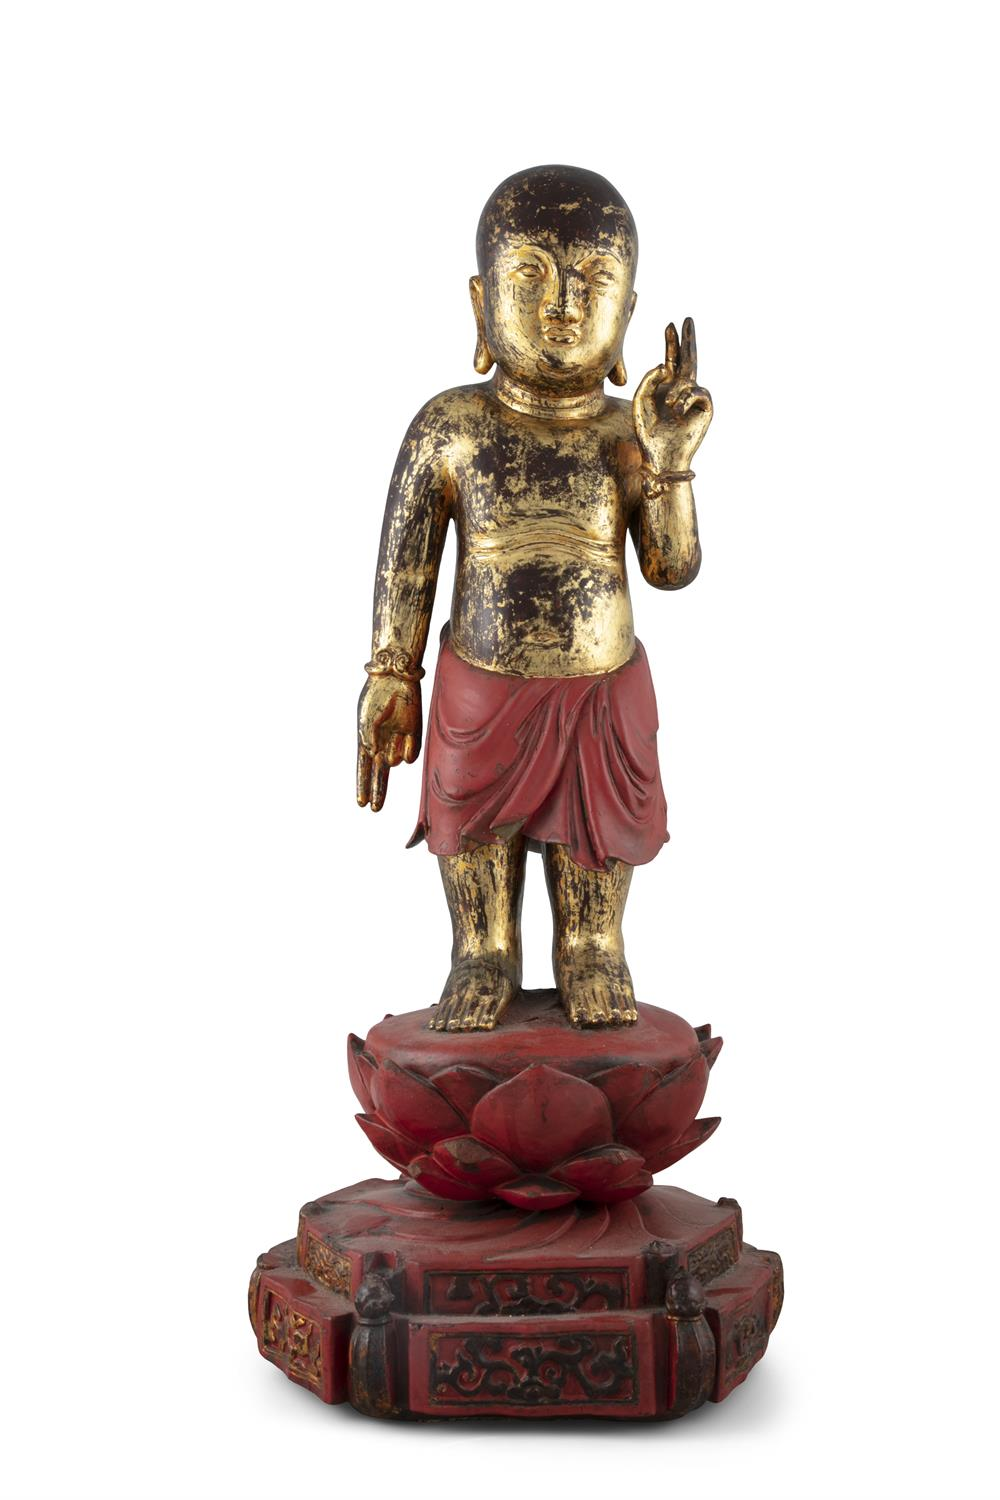 A LARGE GILT-LACQUERED WOODEN SCULPTURE OF THE STANDING INFANT BUDDHA China, Qing Dynasty (or - Image 16 of 20